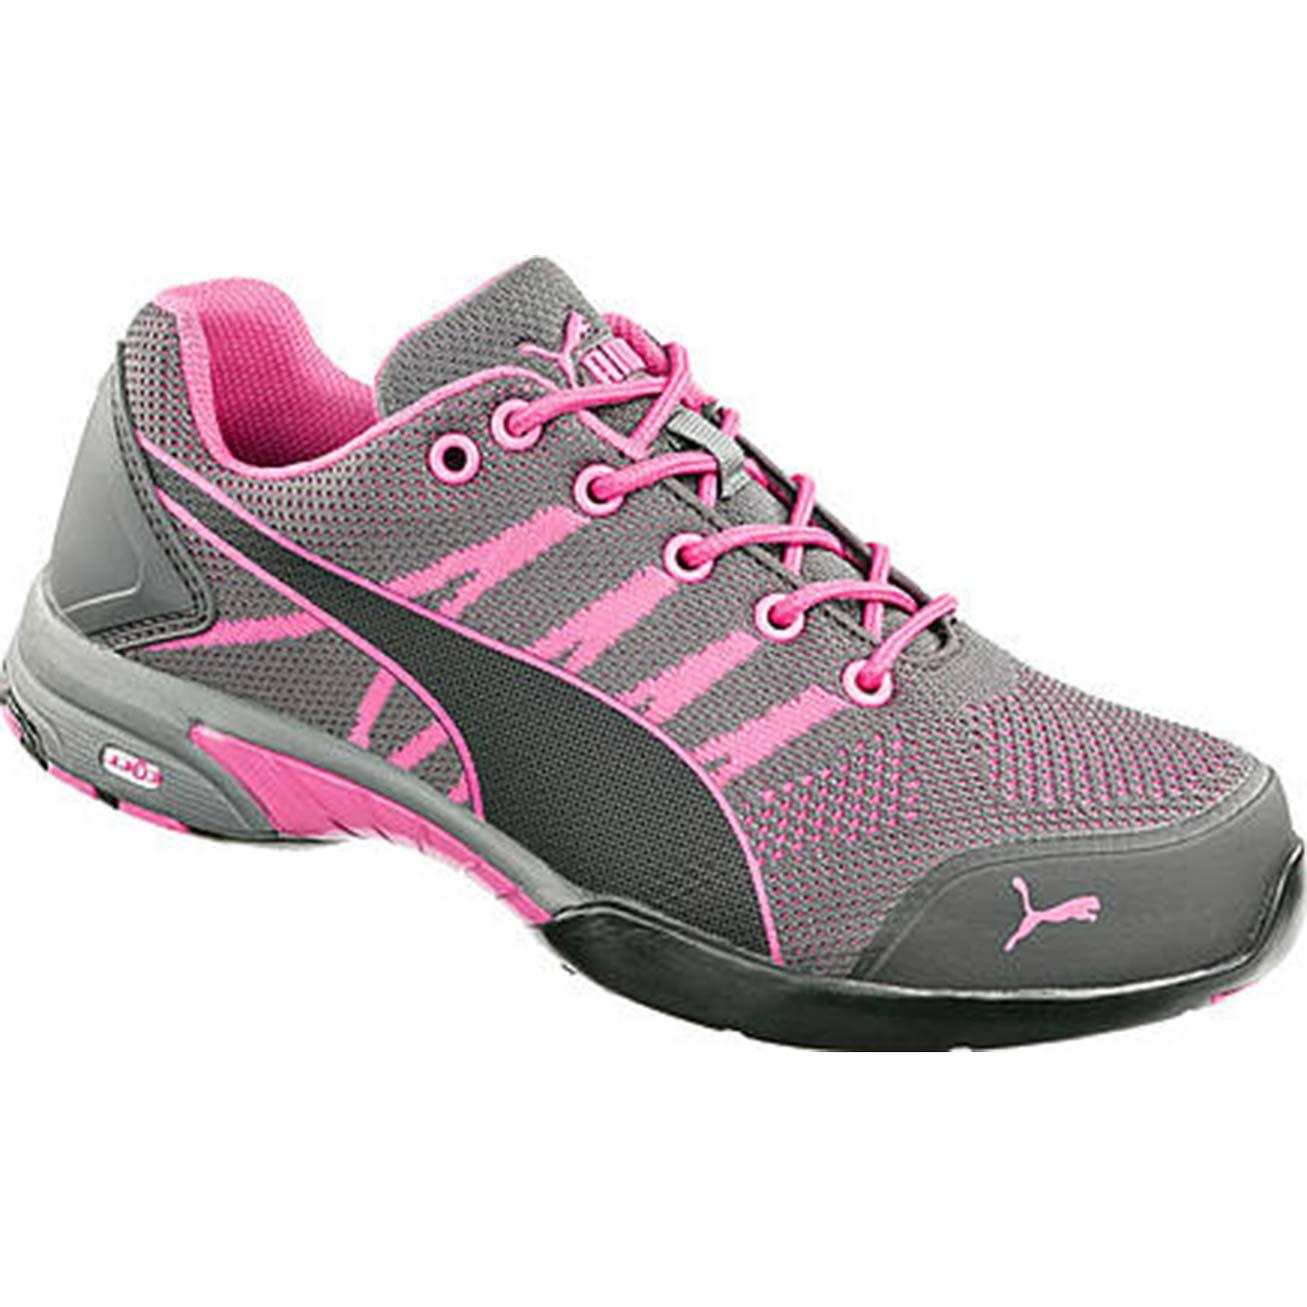 Puma Miss Safety Motion Celerity Knit Women s Steel Toe Static-Dissipative  Work Athletic ShoePuma Miss Safety Motion Celerity Knit Women s Steel Toe  ... c7d34a3c3